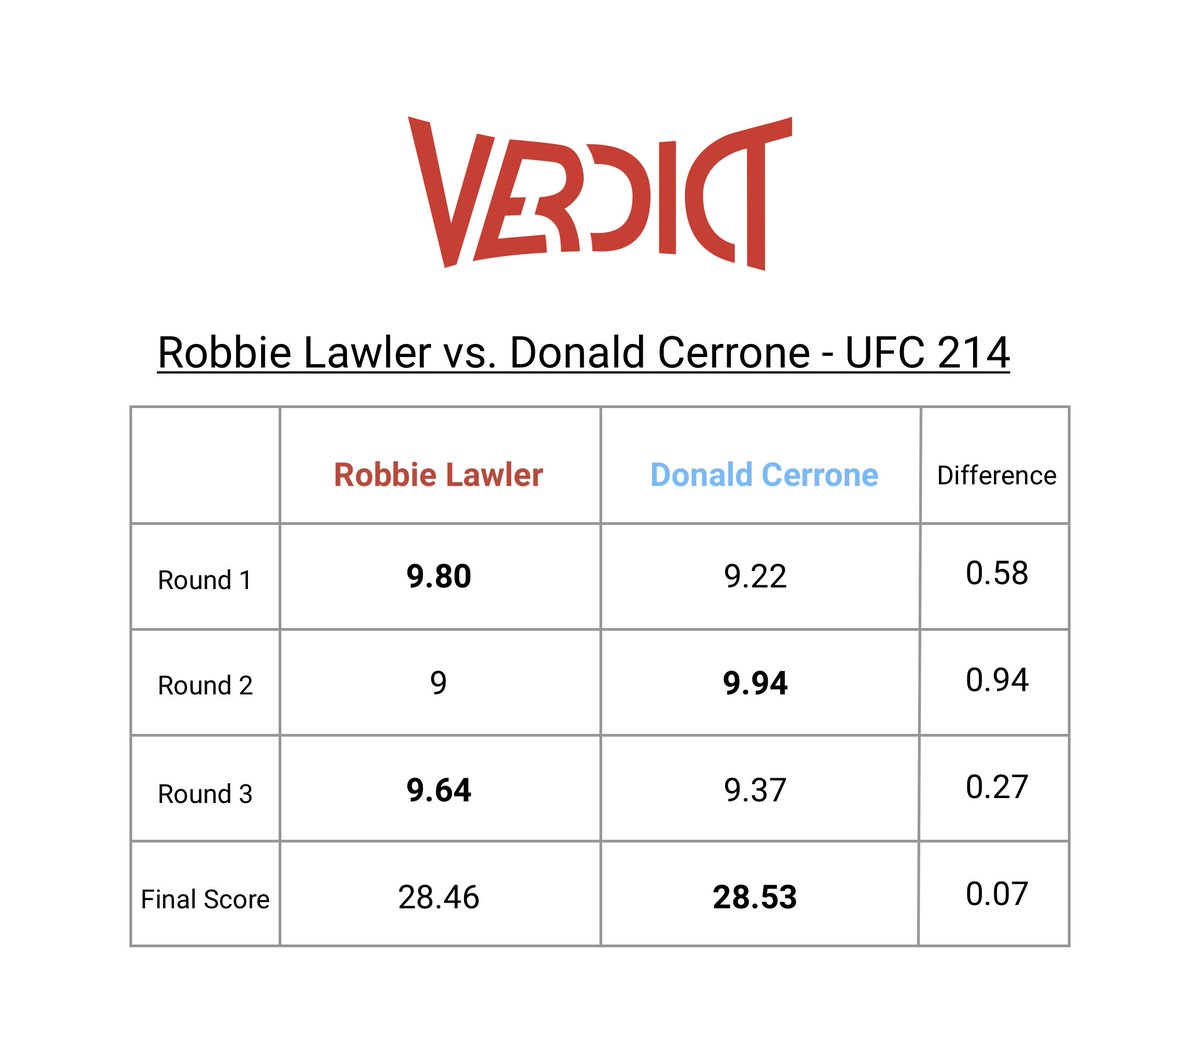 Robbie Lawler vs. Donald Cerrone: Robbie Lawler won 2/3 rounds, but Donald Cerrone had the higher collective final score. Should fights be judged using a larger sample size of judges? Should fights be judged based on the higher final score rather than a round by round system?